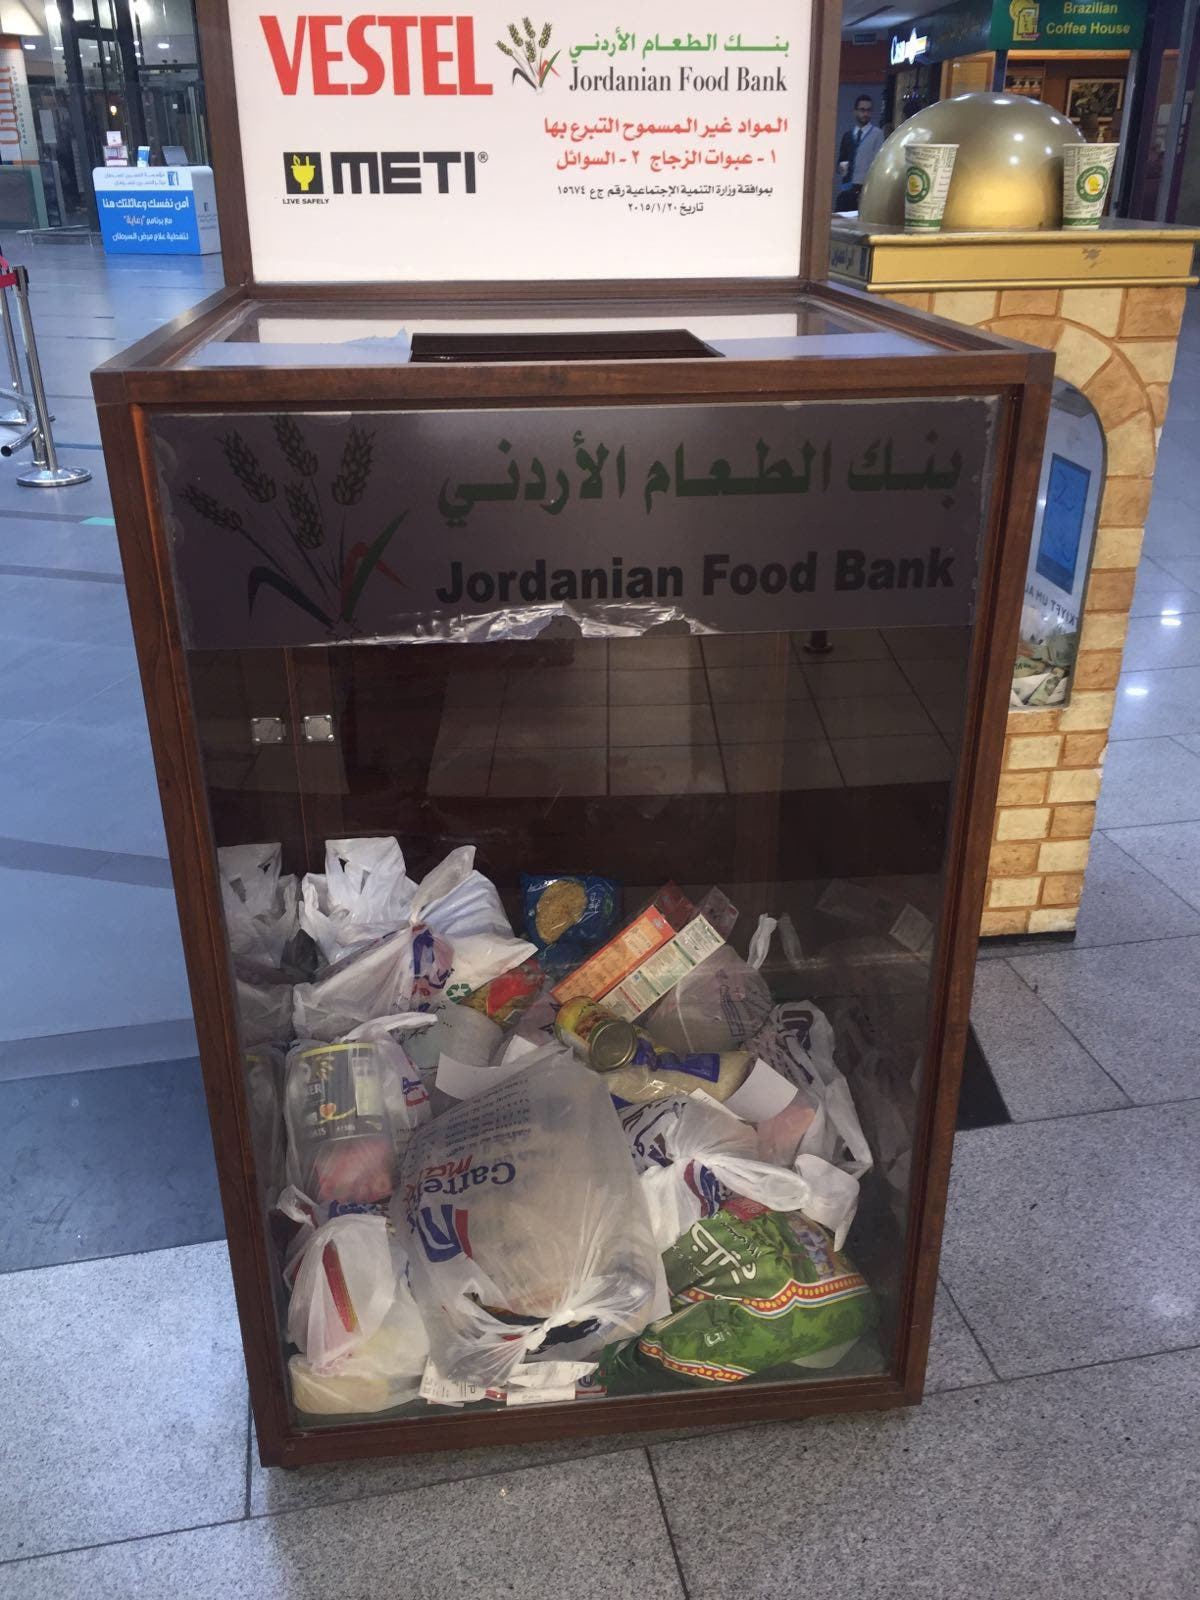 Food Box outside of Carrefour Supermarket in Amman. (Leen Hajjar/ Al Arabiya English)